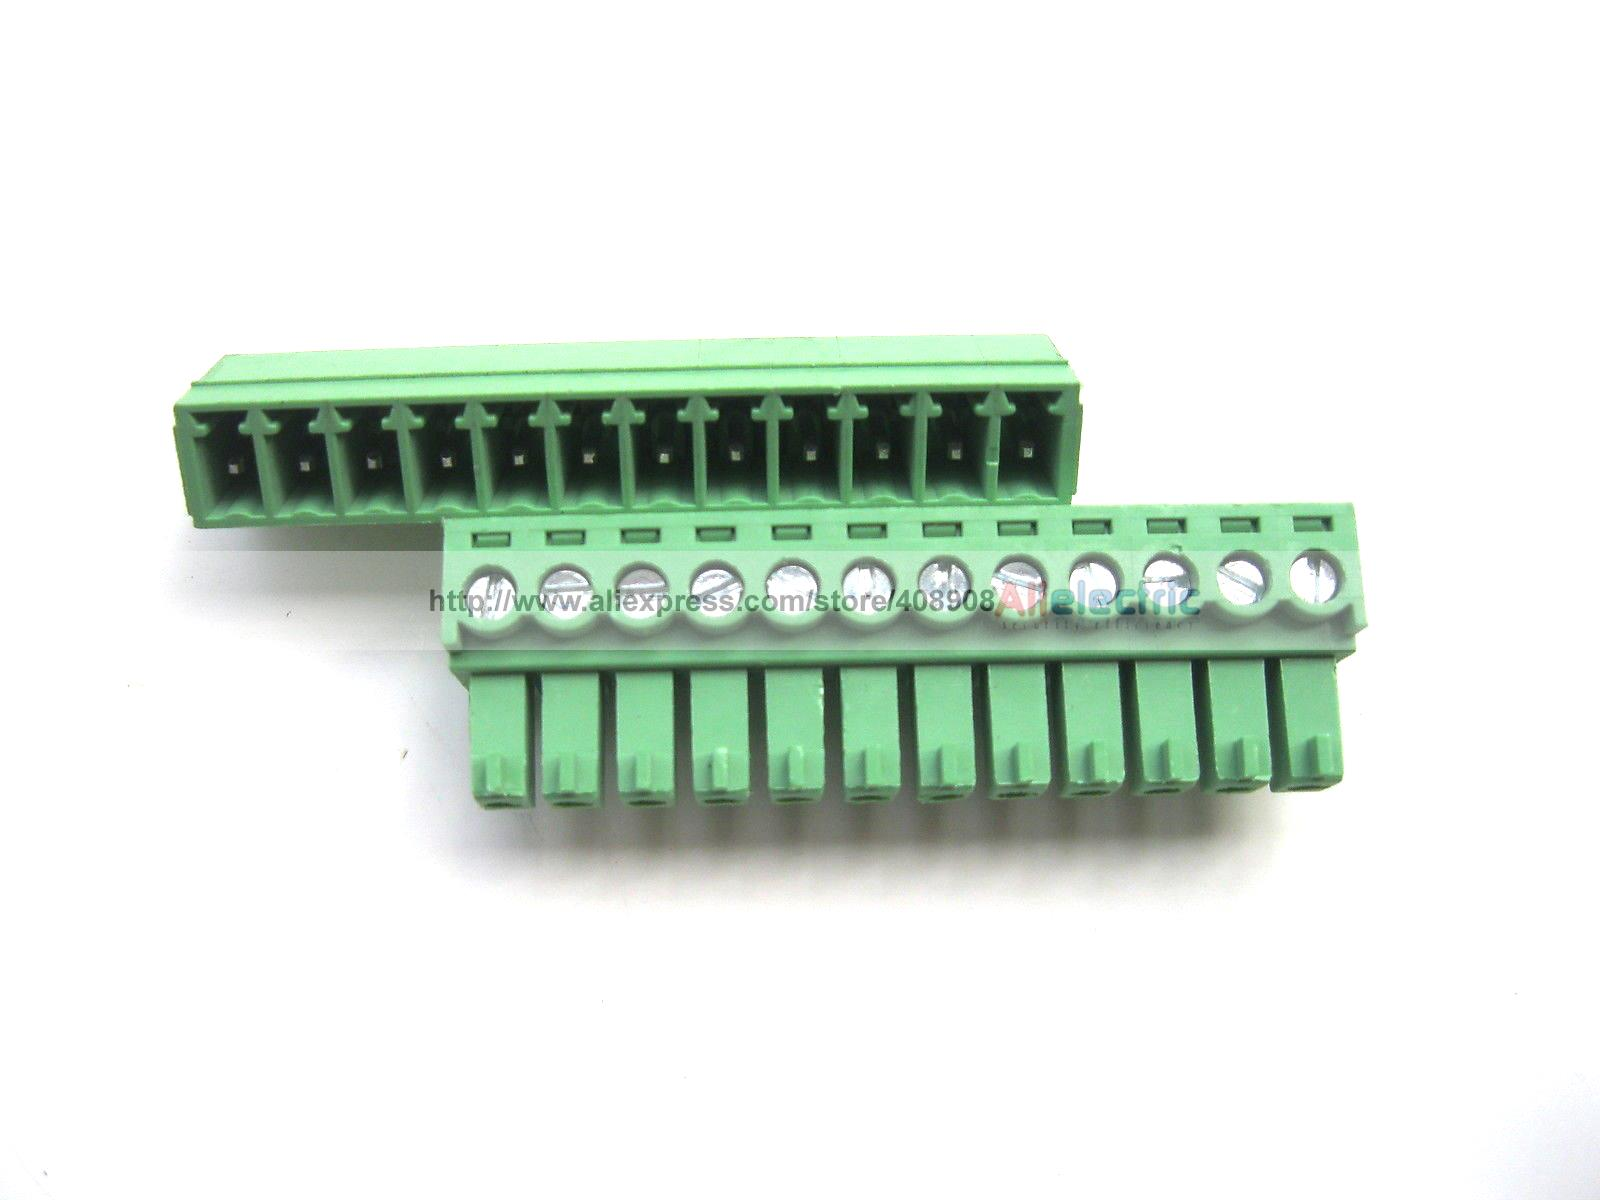 30 Pcs Screw Terminal Block Connector 3.81mm 12 Pin Green Pluggable Type 30 pcs 5 08mm angle 16 pin screw terminal block connector pluggable type green